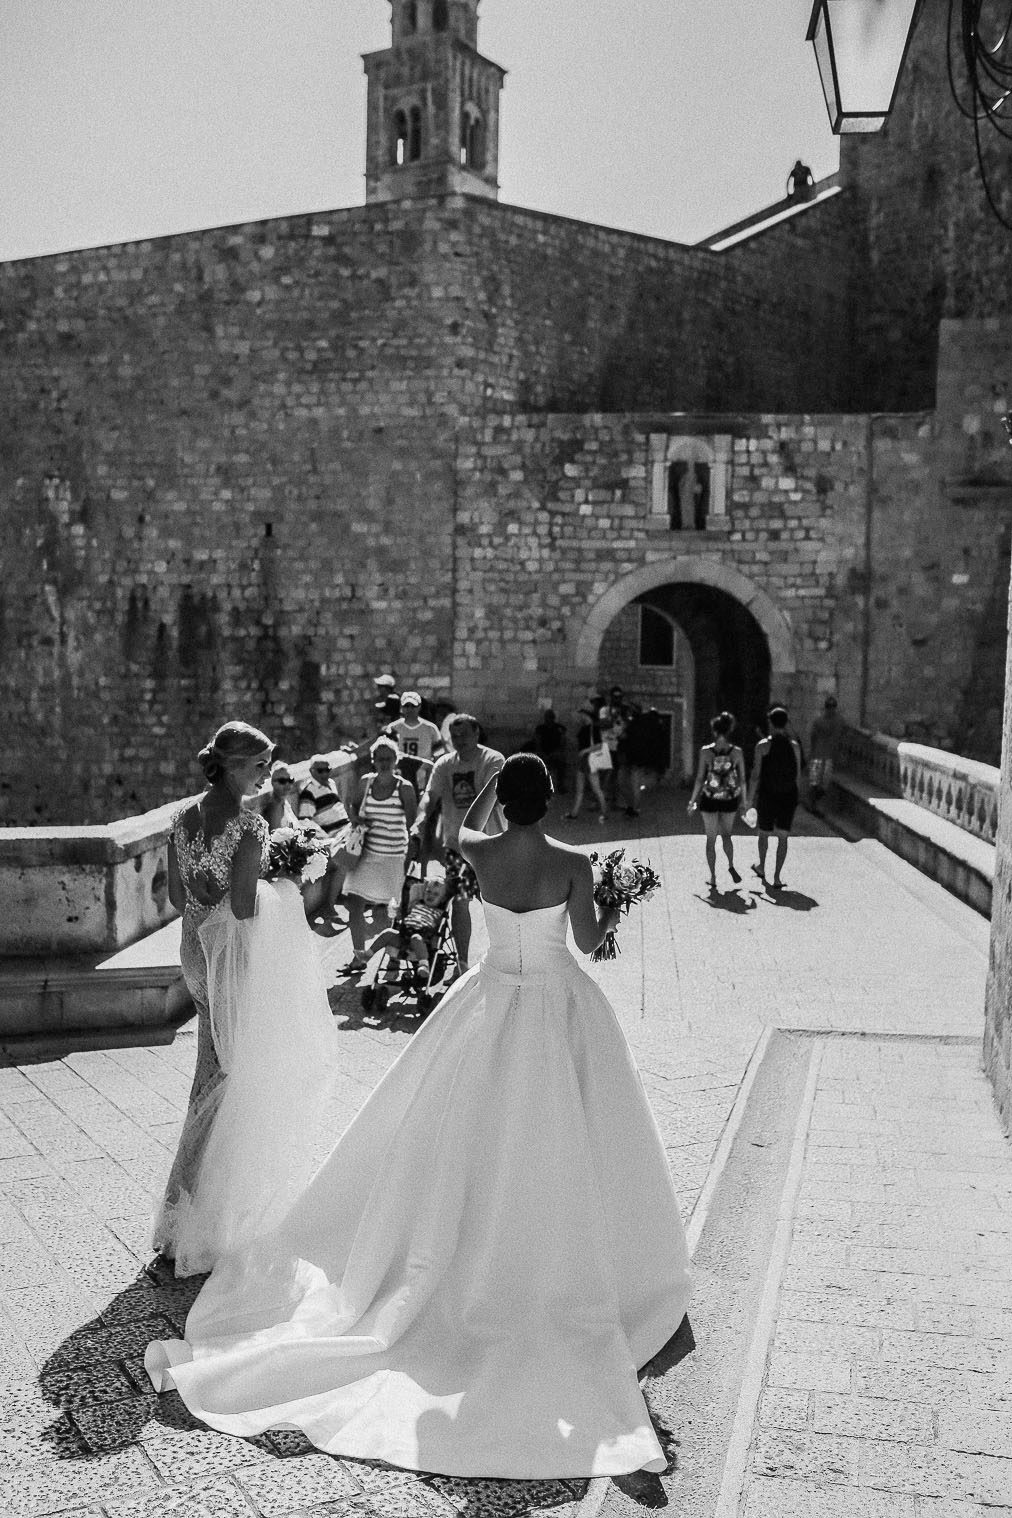 dubrovnik-wedding-photographer-161